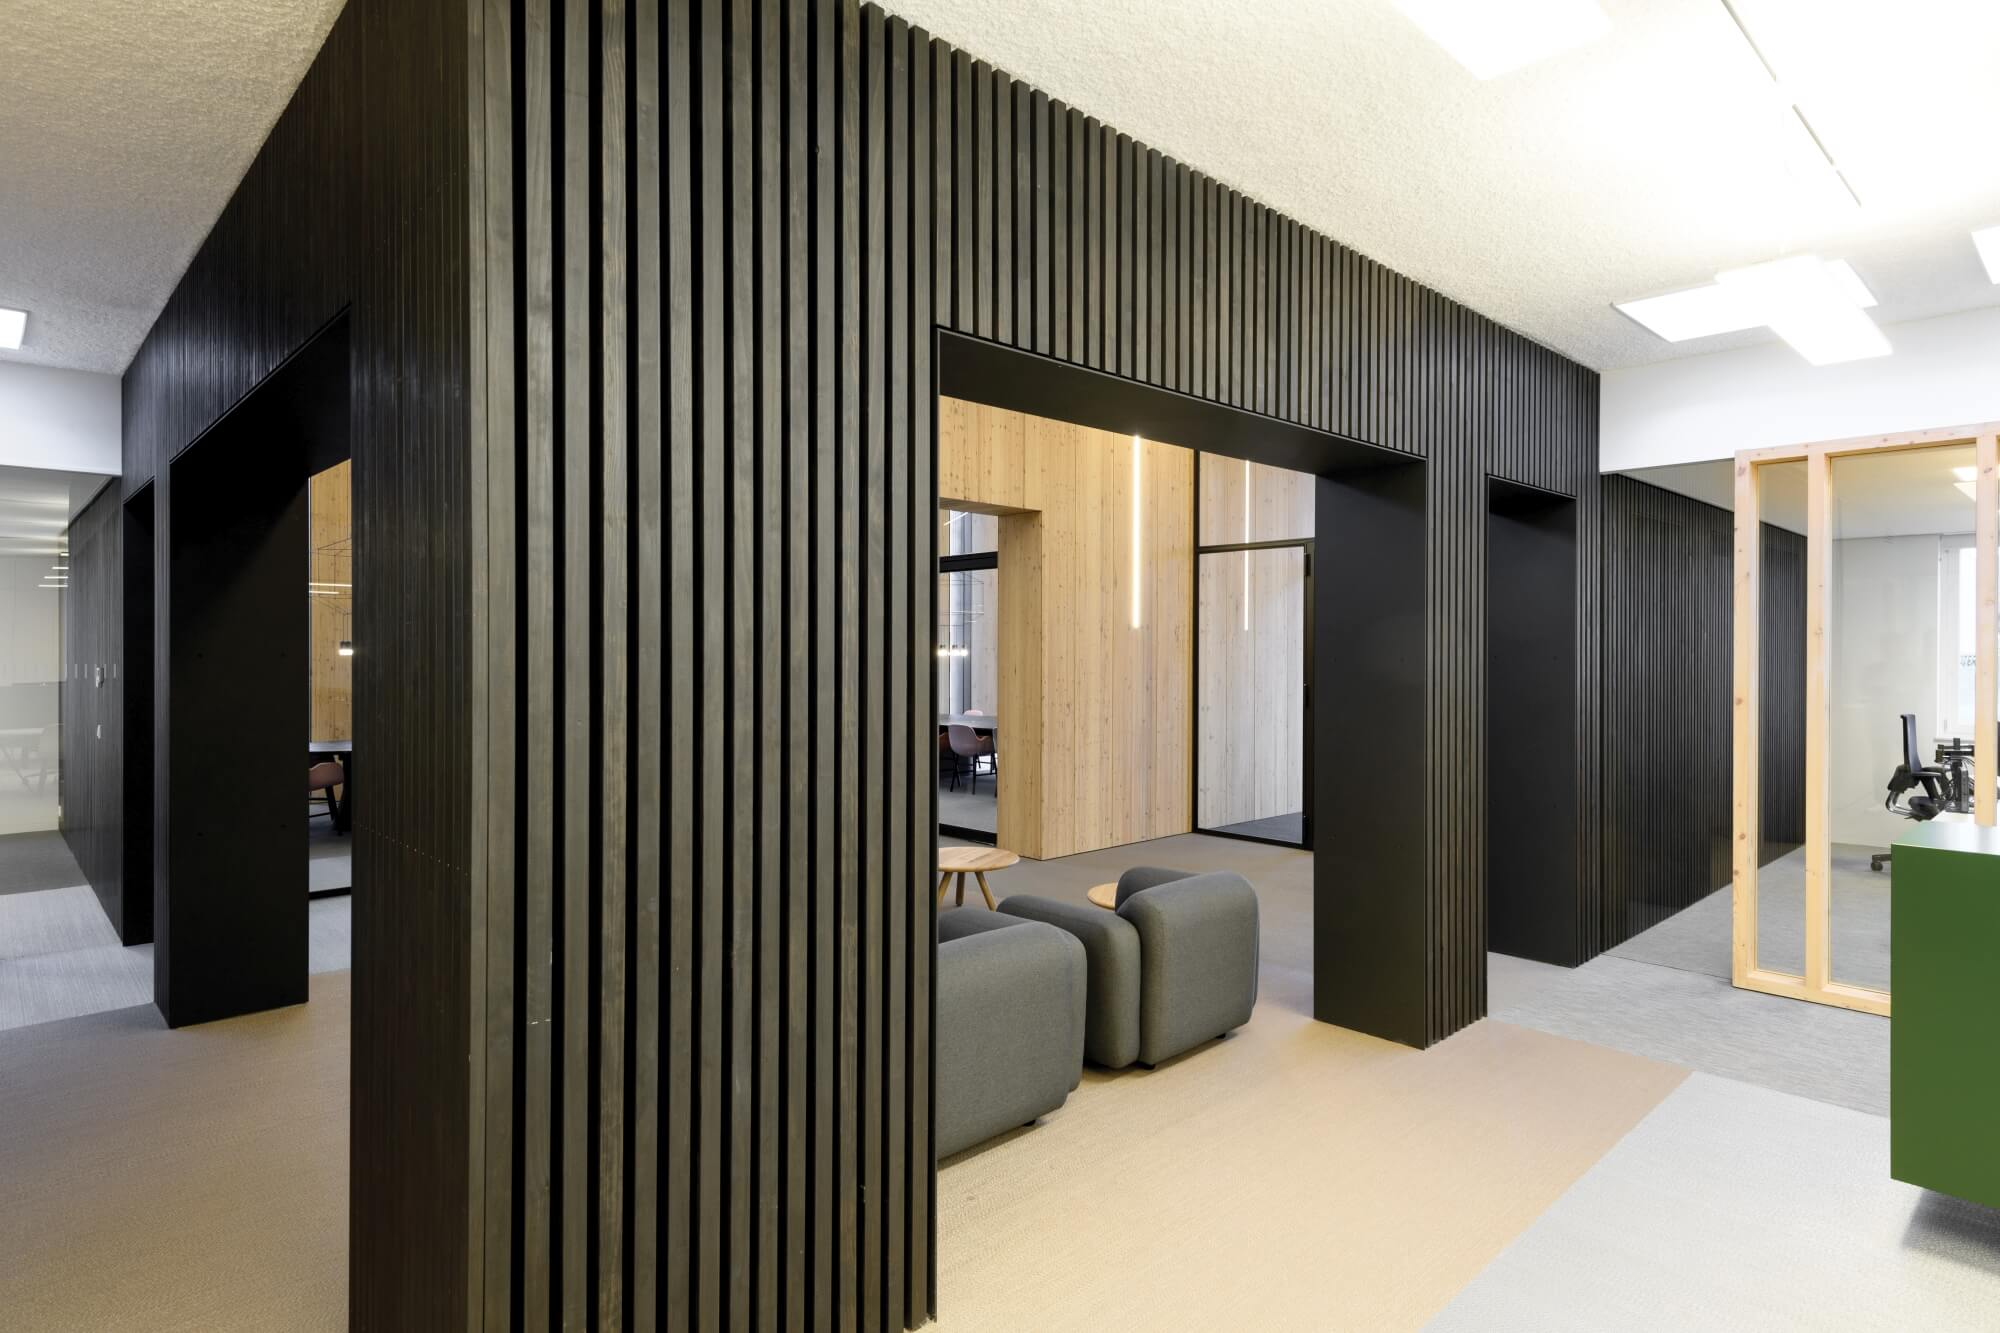 Office architecture with wood slats finished in dark wood finish.